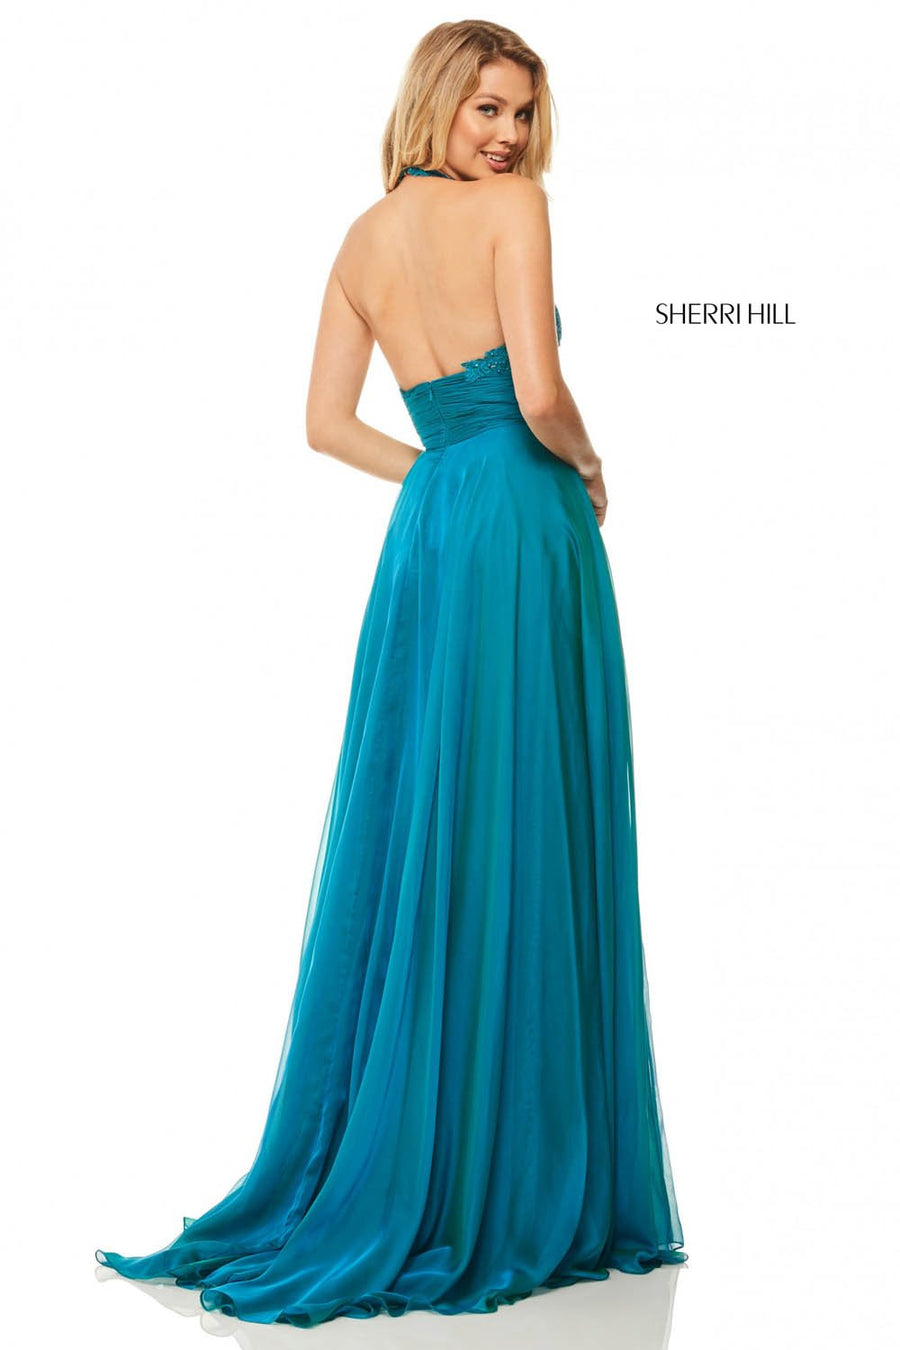 Sherri Hill 52817 prom dress images.  Sherri Hill 52817 is available in these colors: Teal, Berry, Gunmetal, Peacock, Navy, Eggplant.